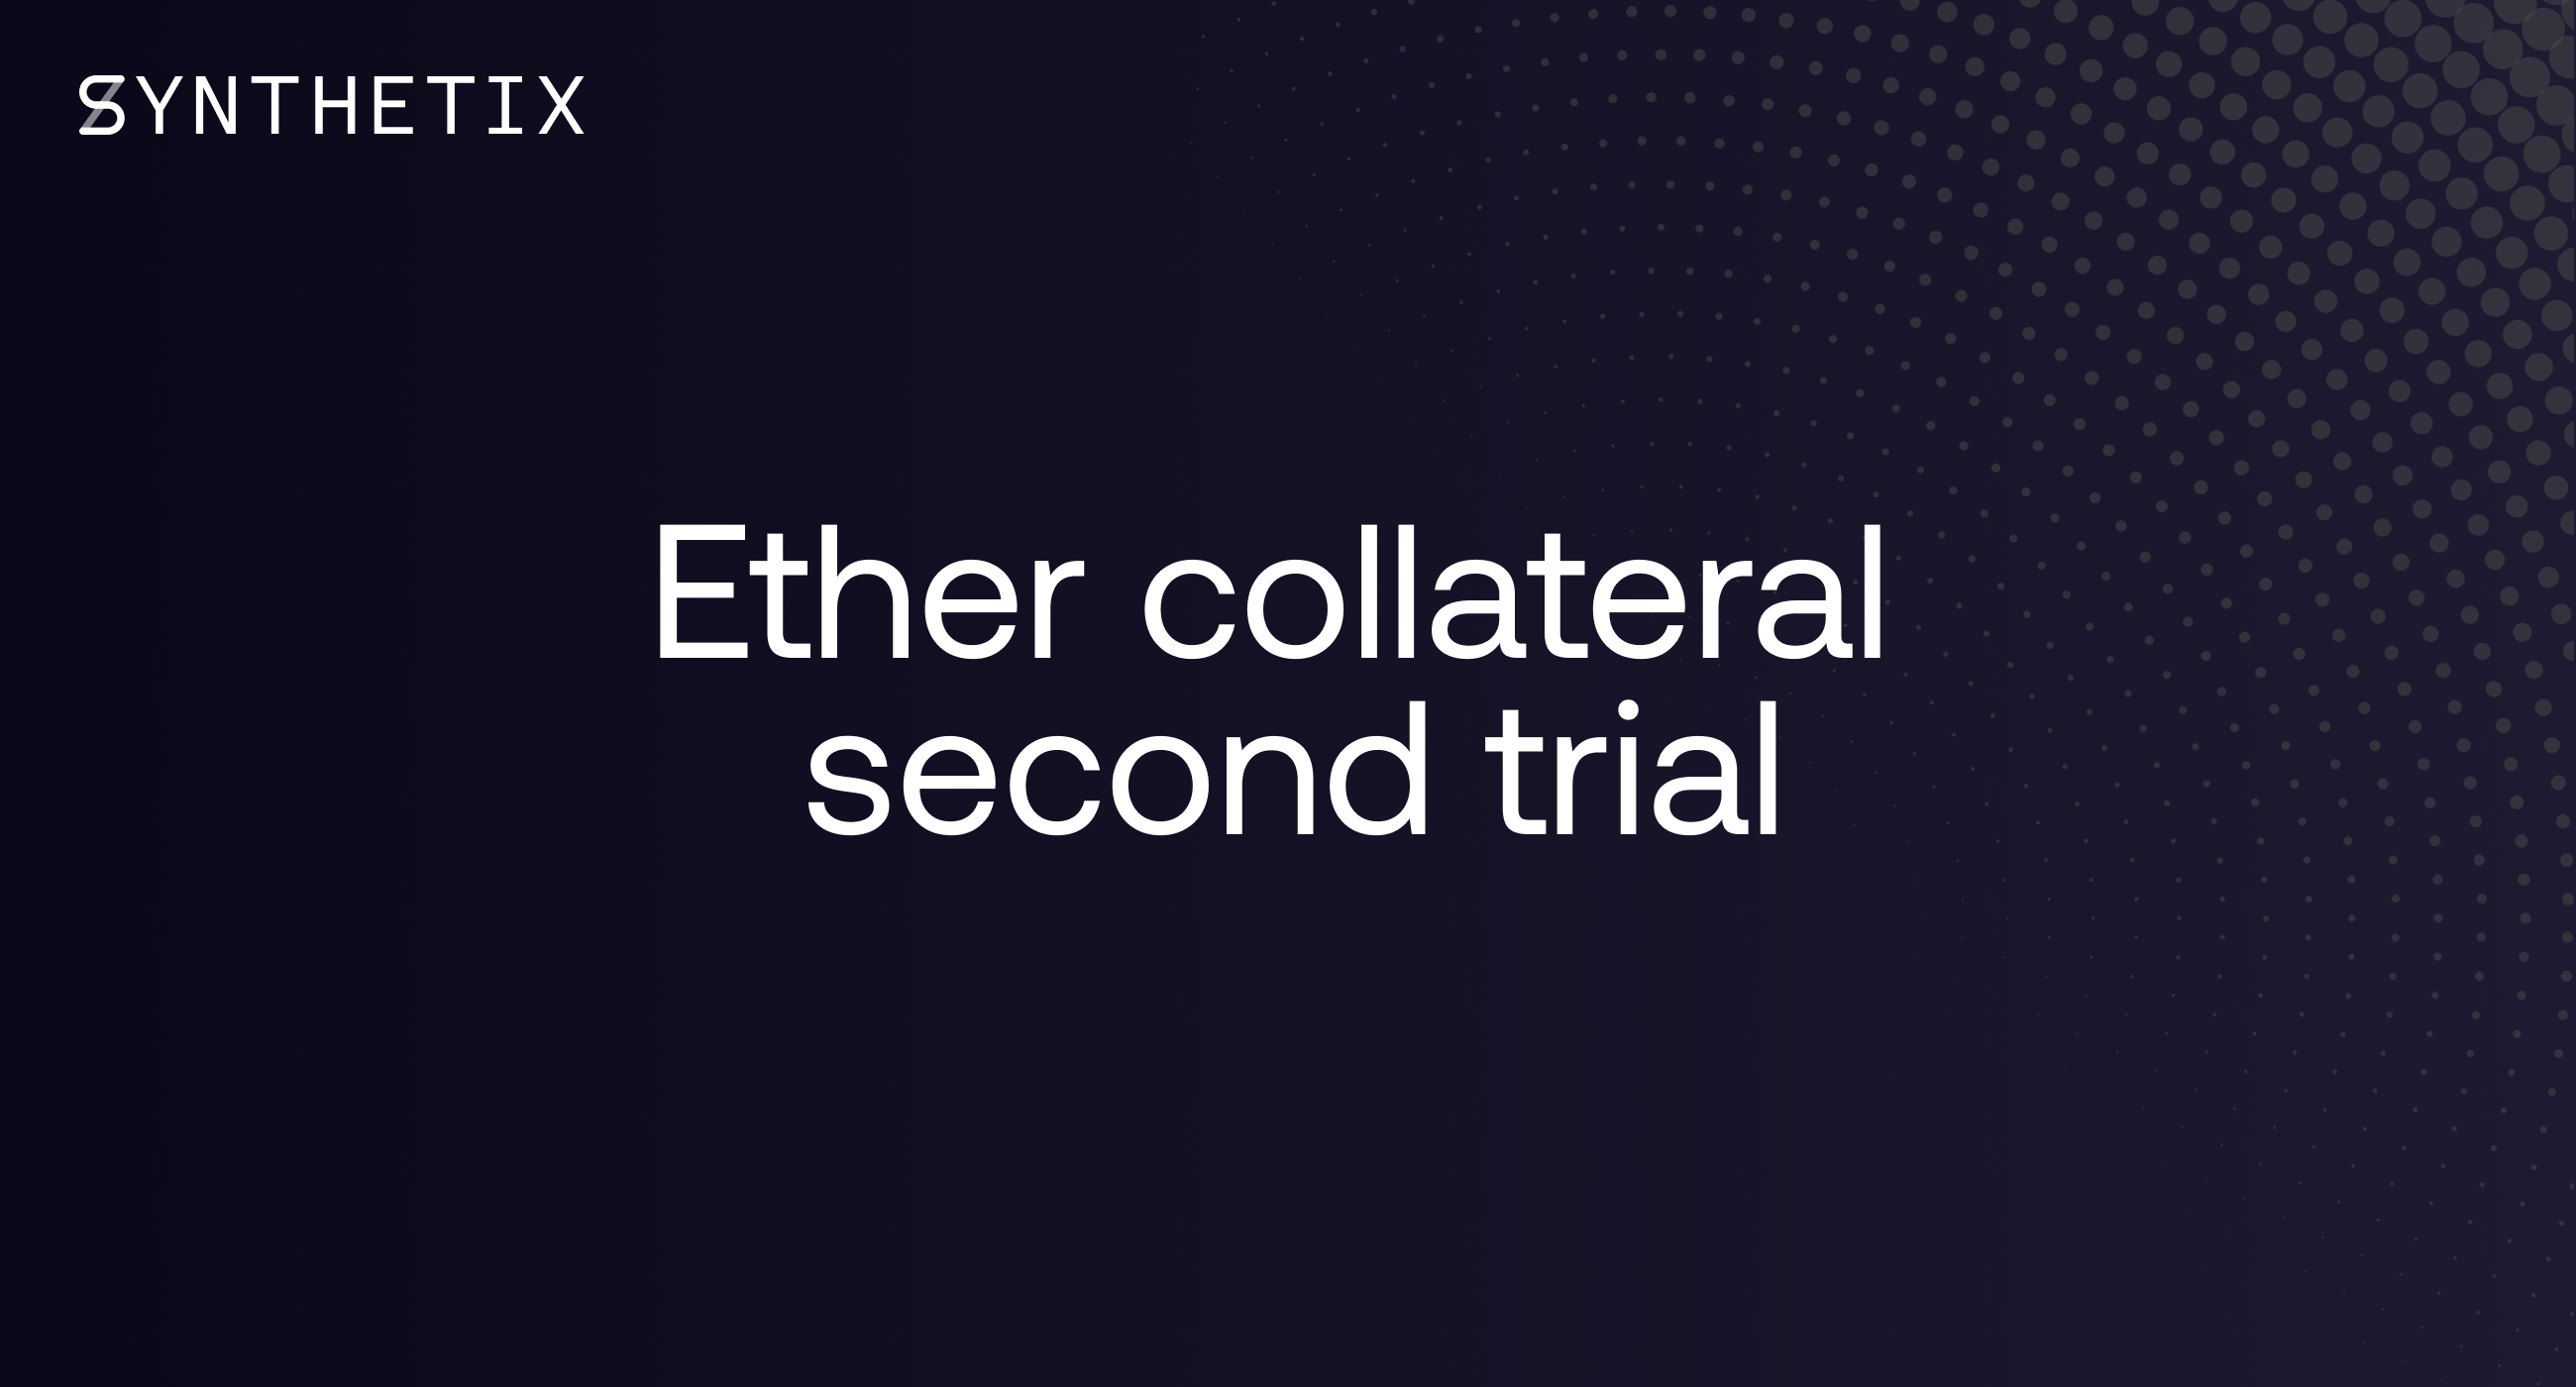 Everything you need to know before participating in the second Ether collateral trial